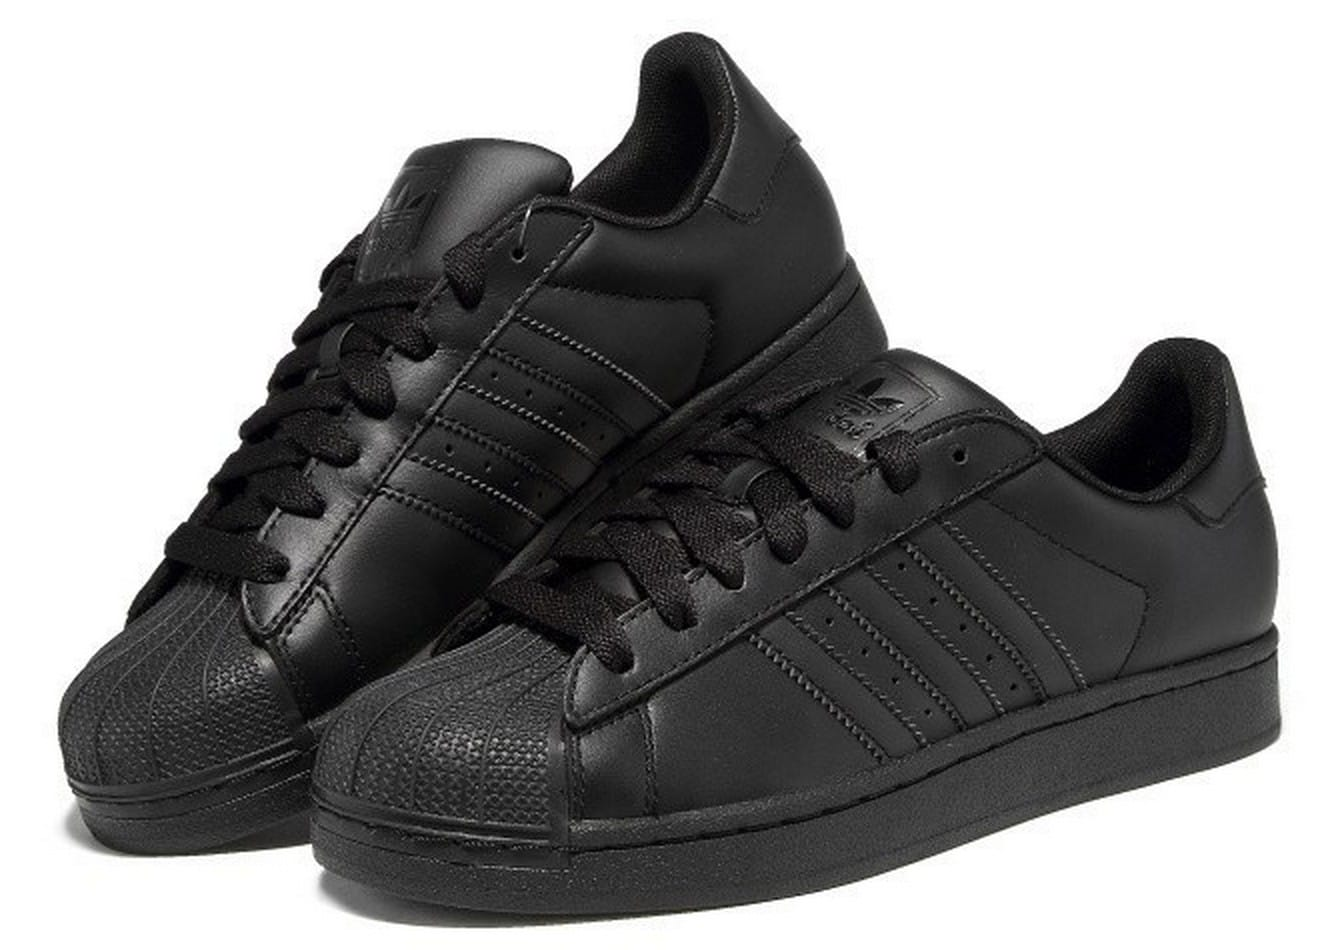 adidas superstar 2017 negras